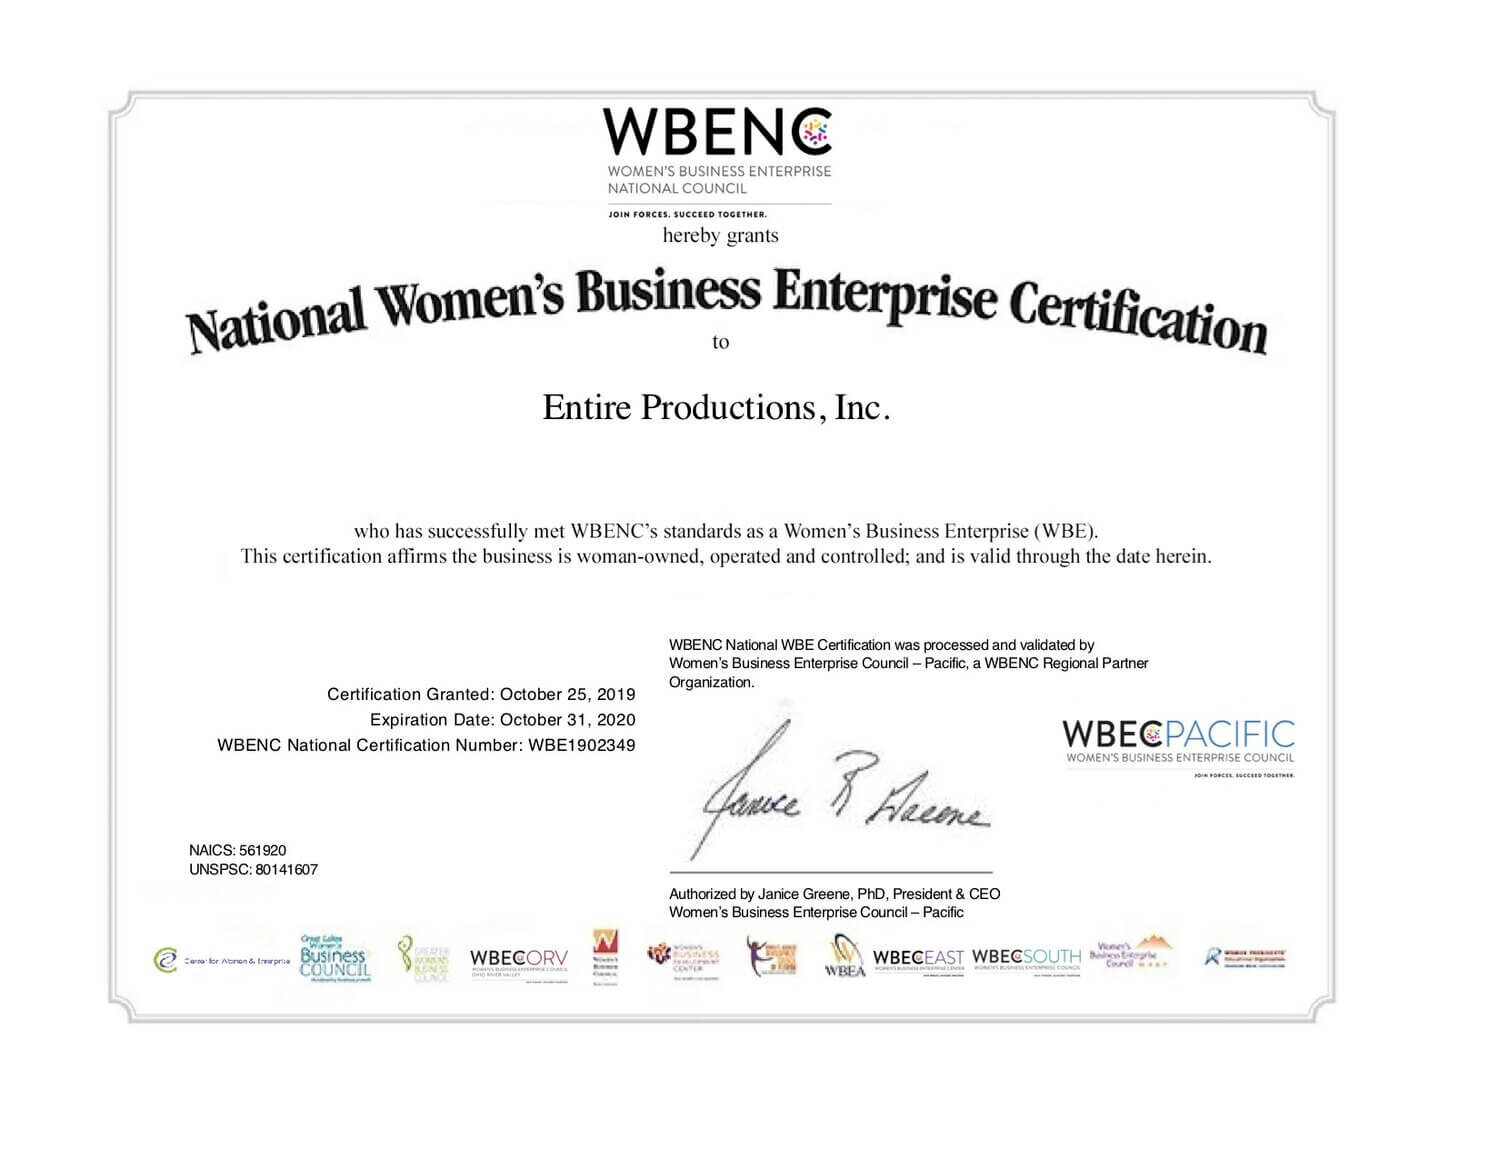 Women Owned Business Certificate - Entire Productions, Inc.